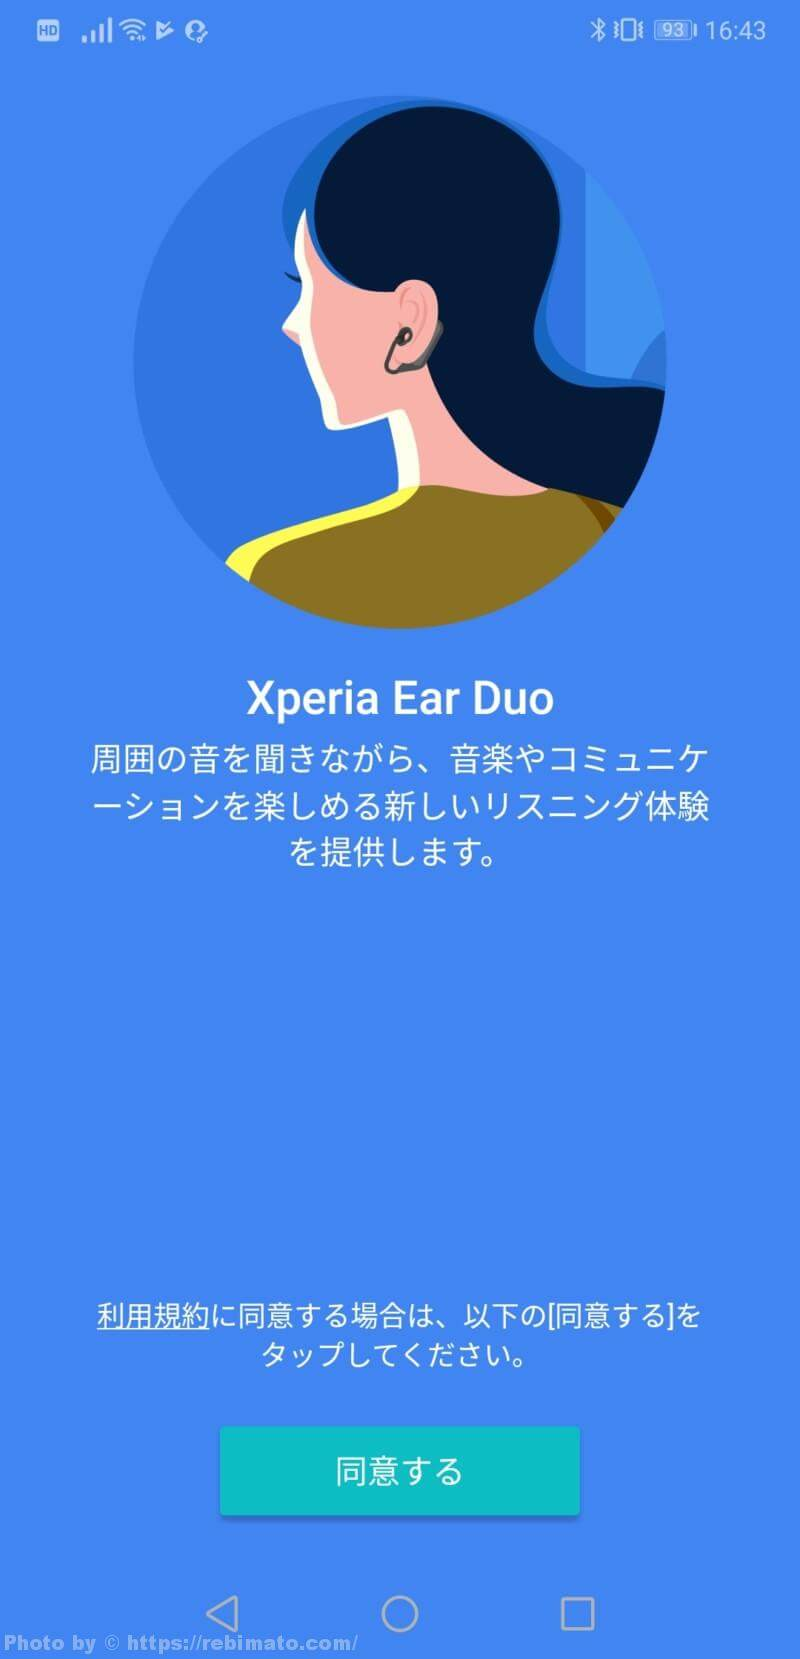 Xperia Ear Duo 設定